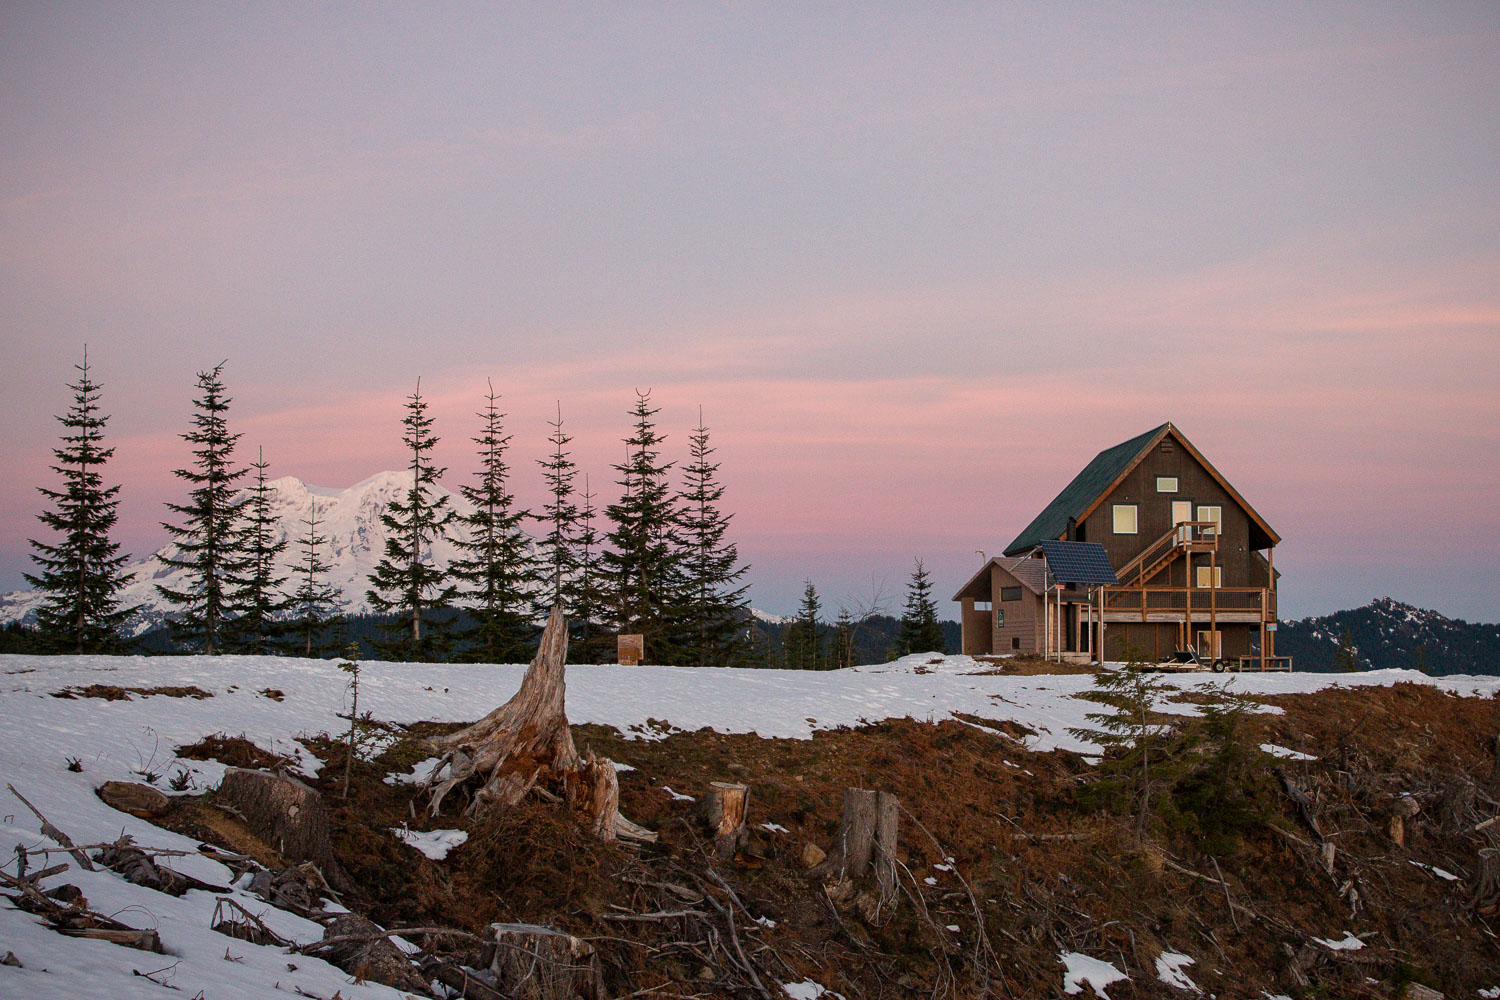 Bruni's Snow Bowl Hut and Mt. Rainer in the distance.